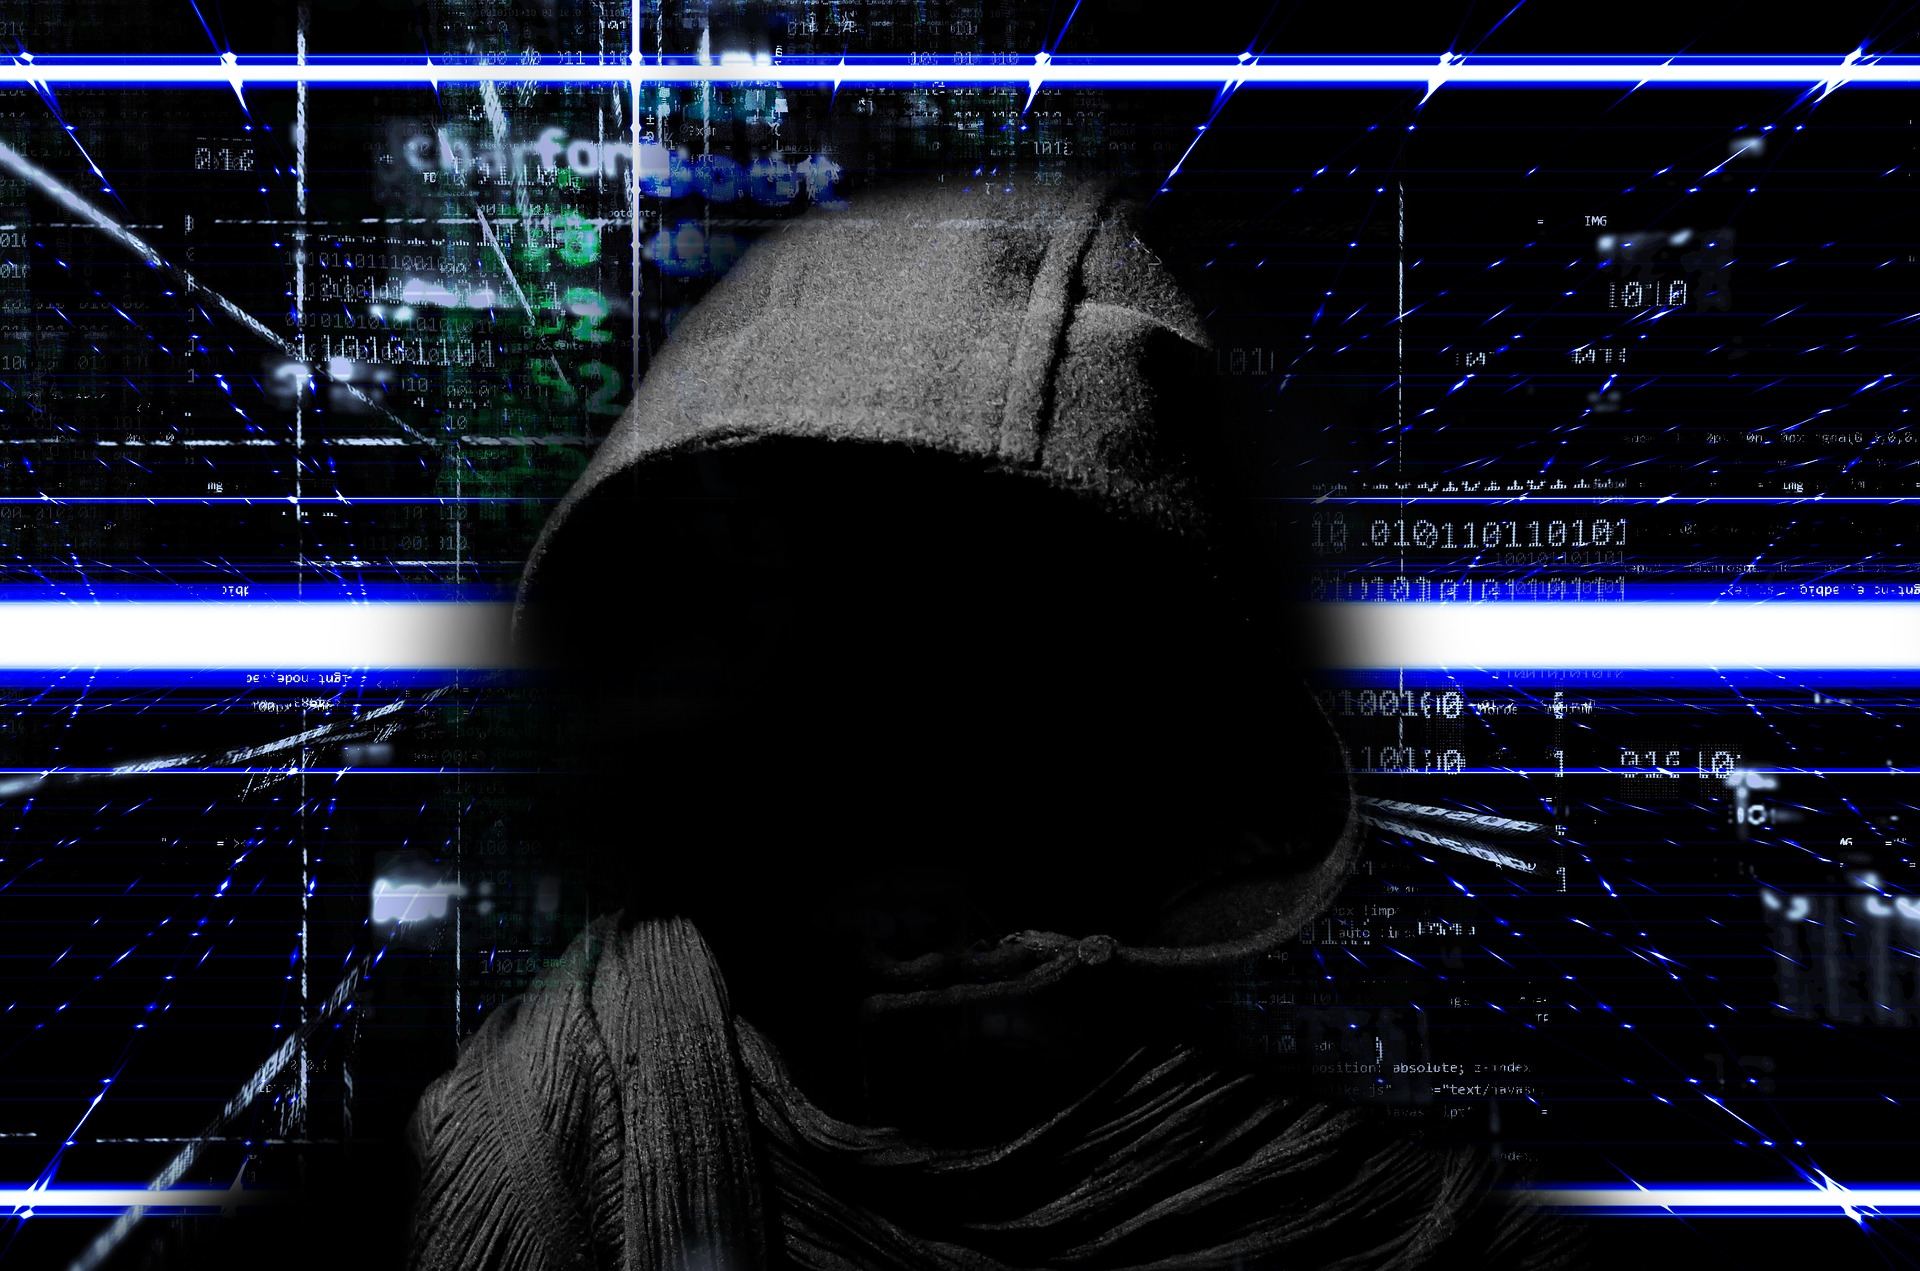 Hacking and its effects on business